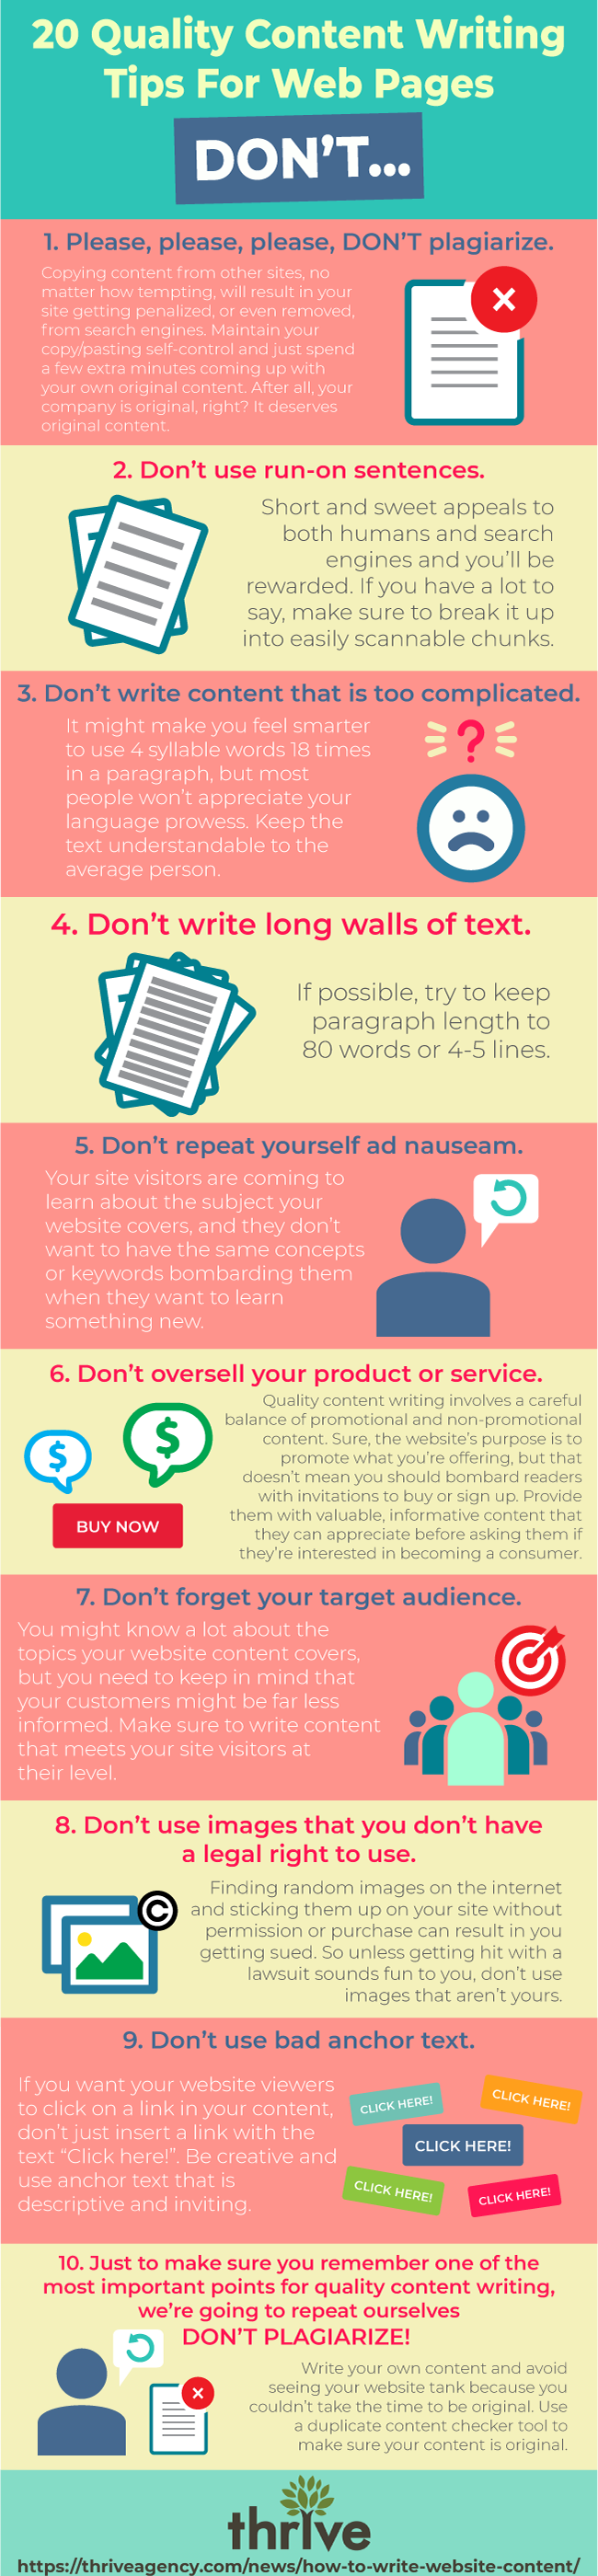 How To Write Website Content | 20 Tips For Quality Content Writing